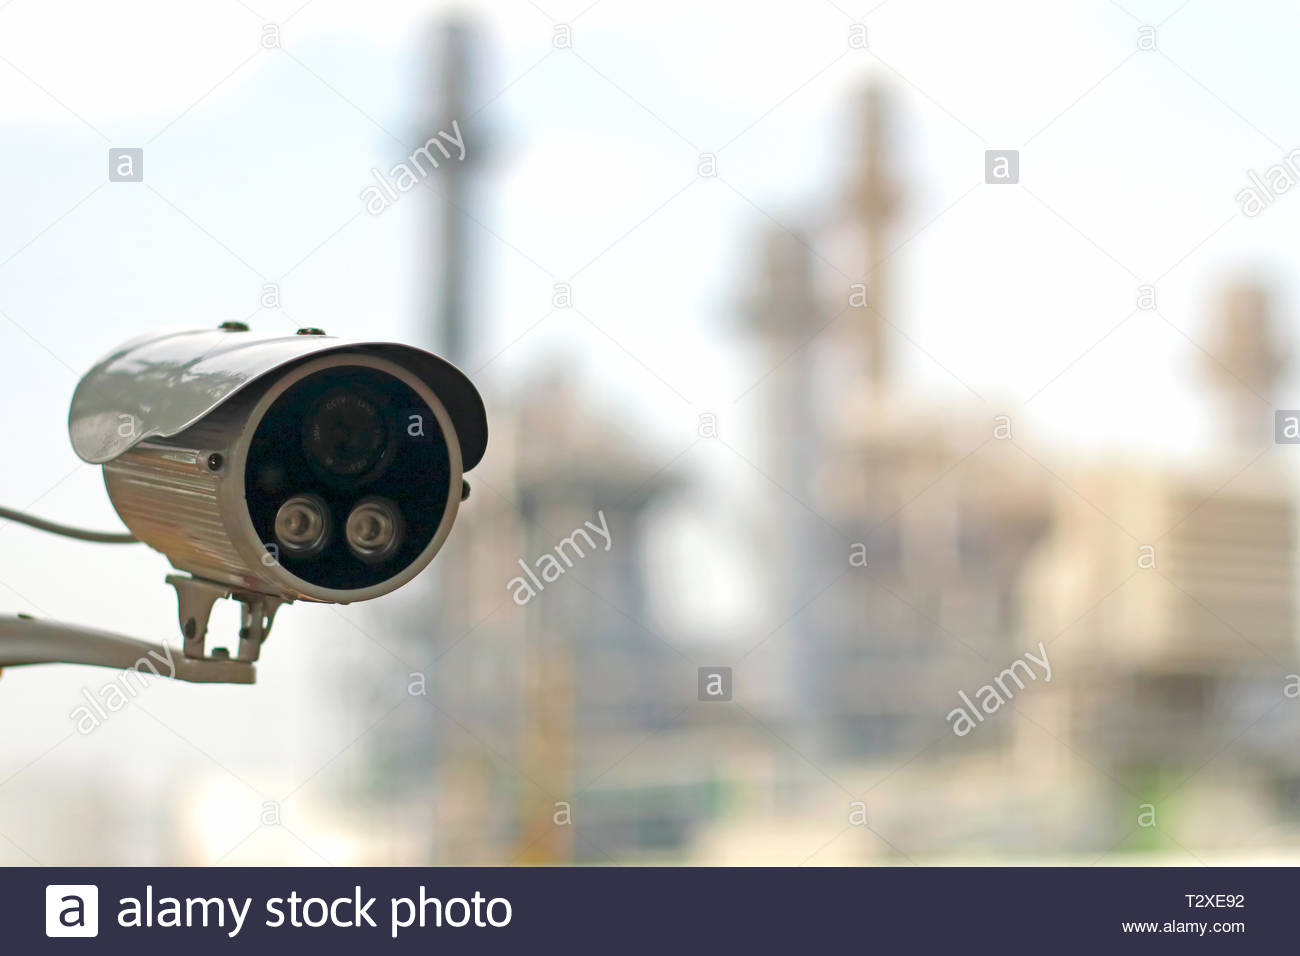 CCTV camera (closed circuit camera) surveillance Safety system with power plant on background - Stock Image